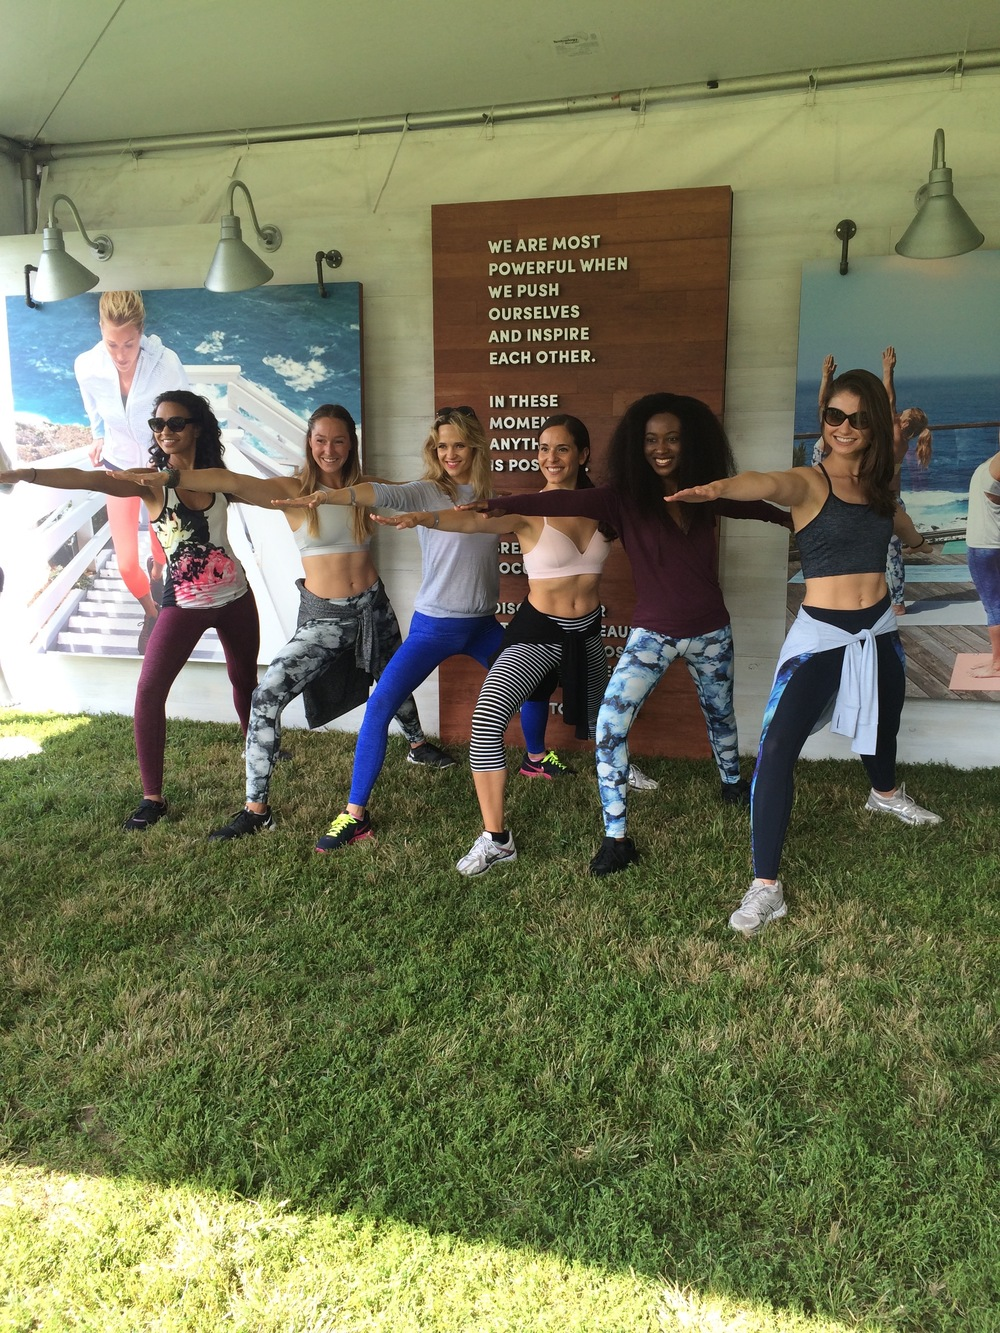 Athleta spokesmodels in all Athleta looks at the Wanderlust Festival in Prospect Park, Brooklyn.  I'm in the middle wearing Athleta pants, bra, and sweater.